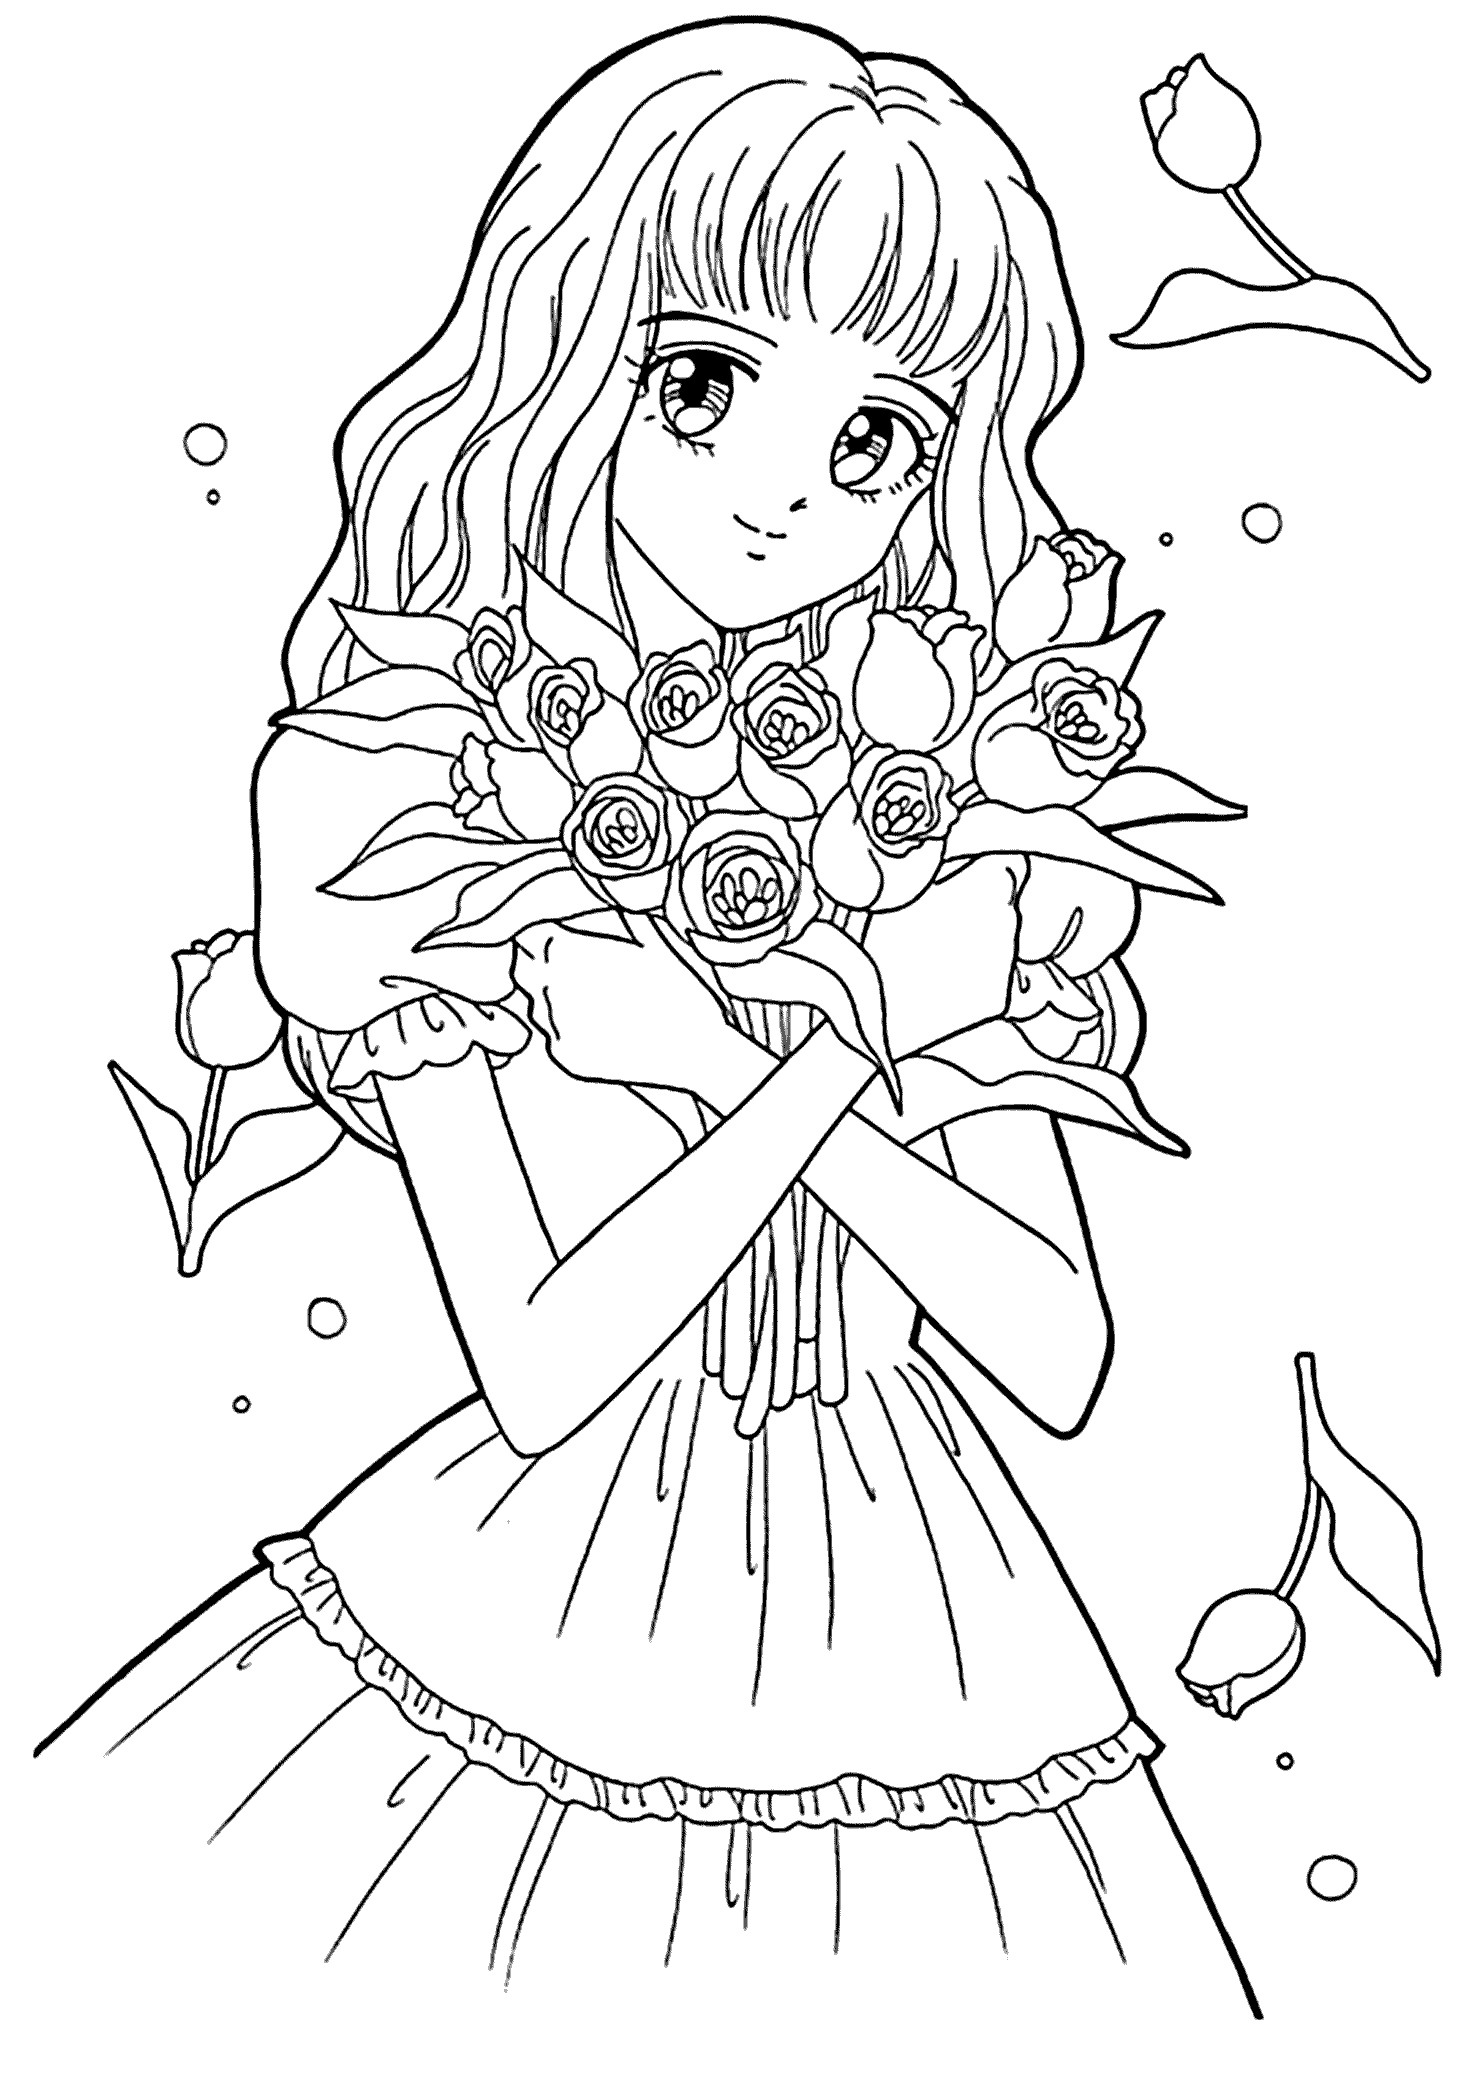 pretty coloring sheets coloring pages for girls best coloring pages for kids sheets coloring pretty